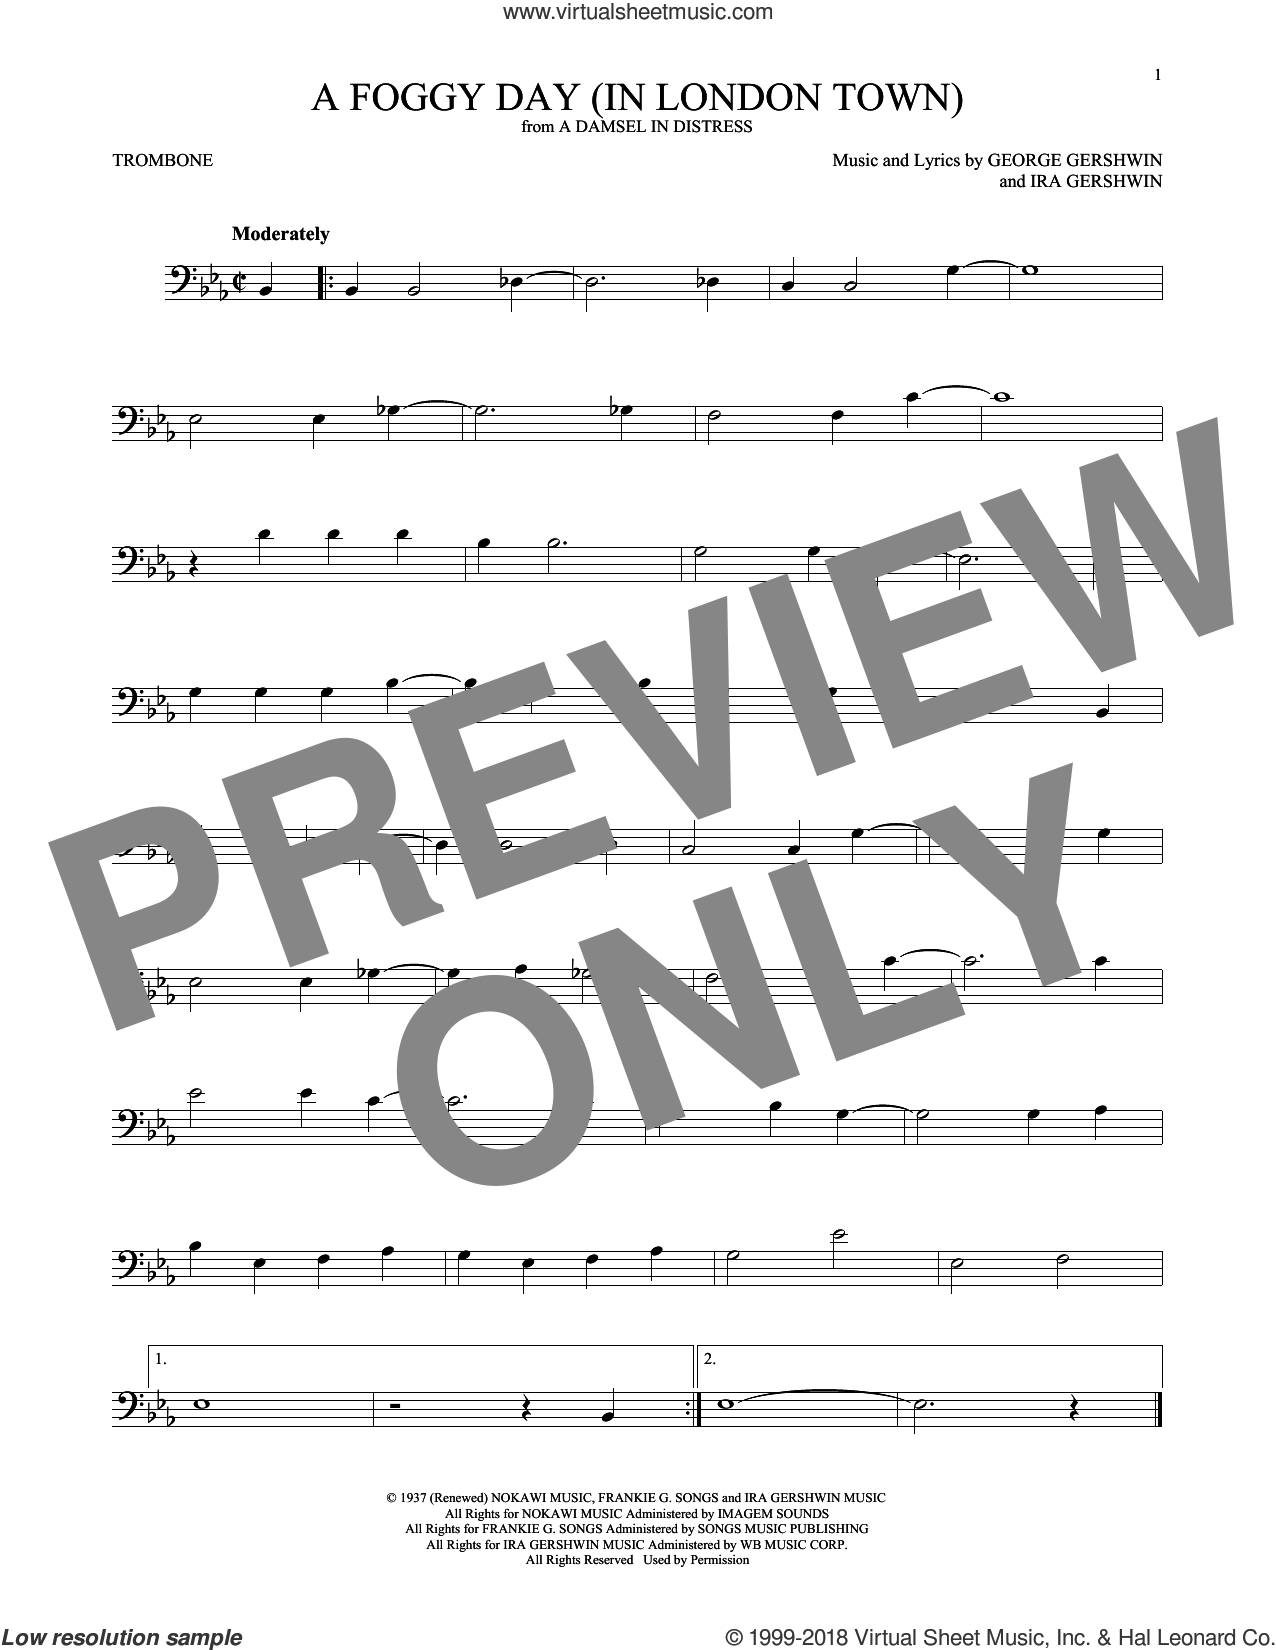 A Foggy Day (In London Town) sheet music for trombone solo by George Gershwin and Ira Gershwin, intermediate skill level